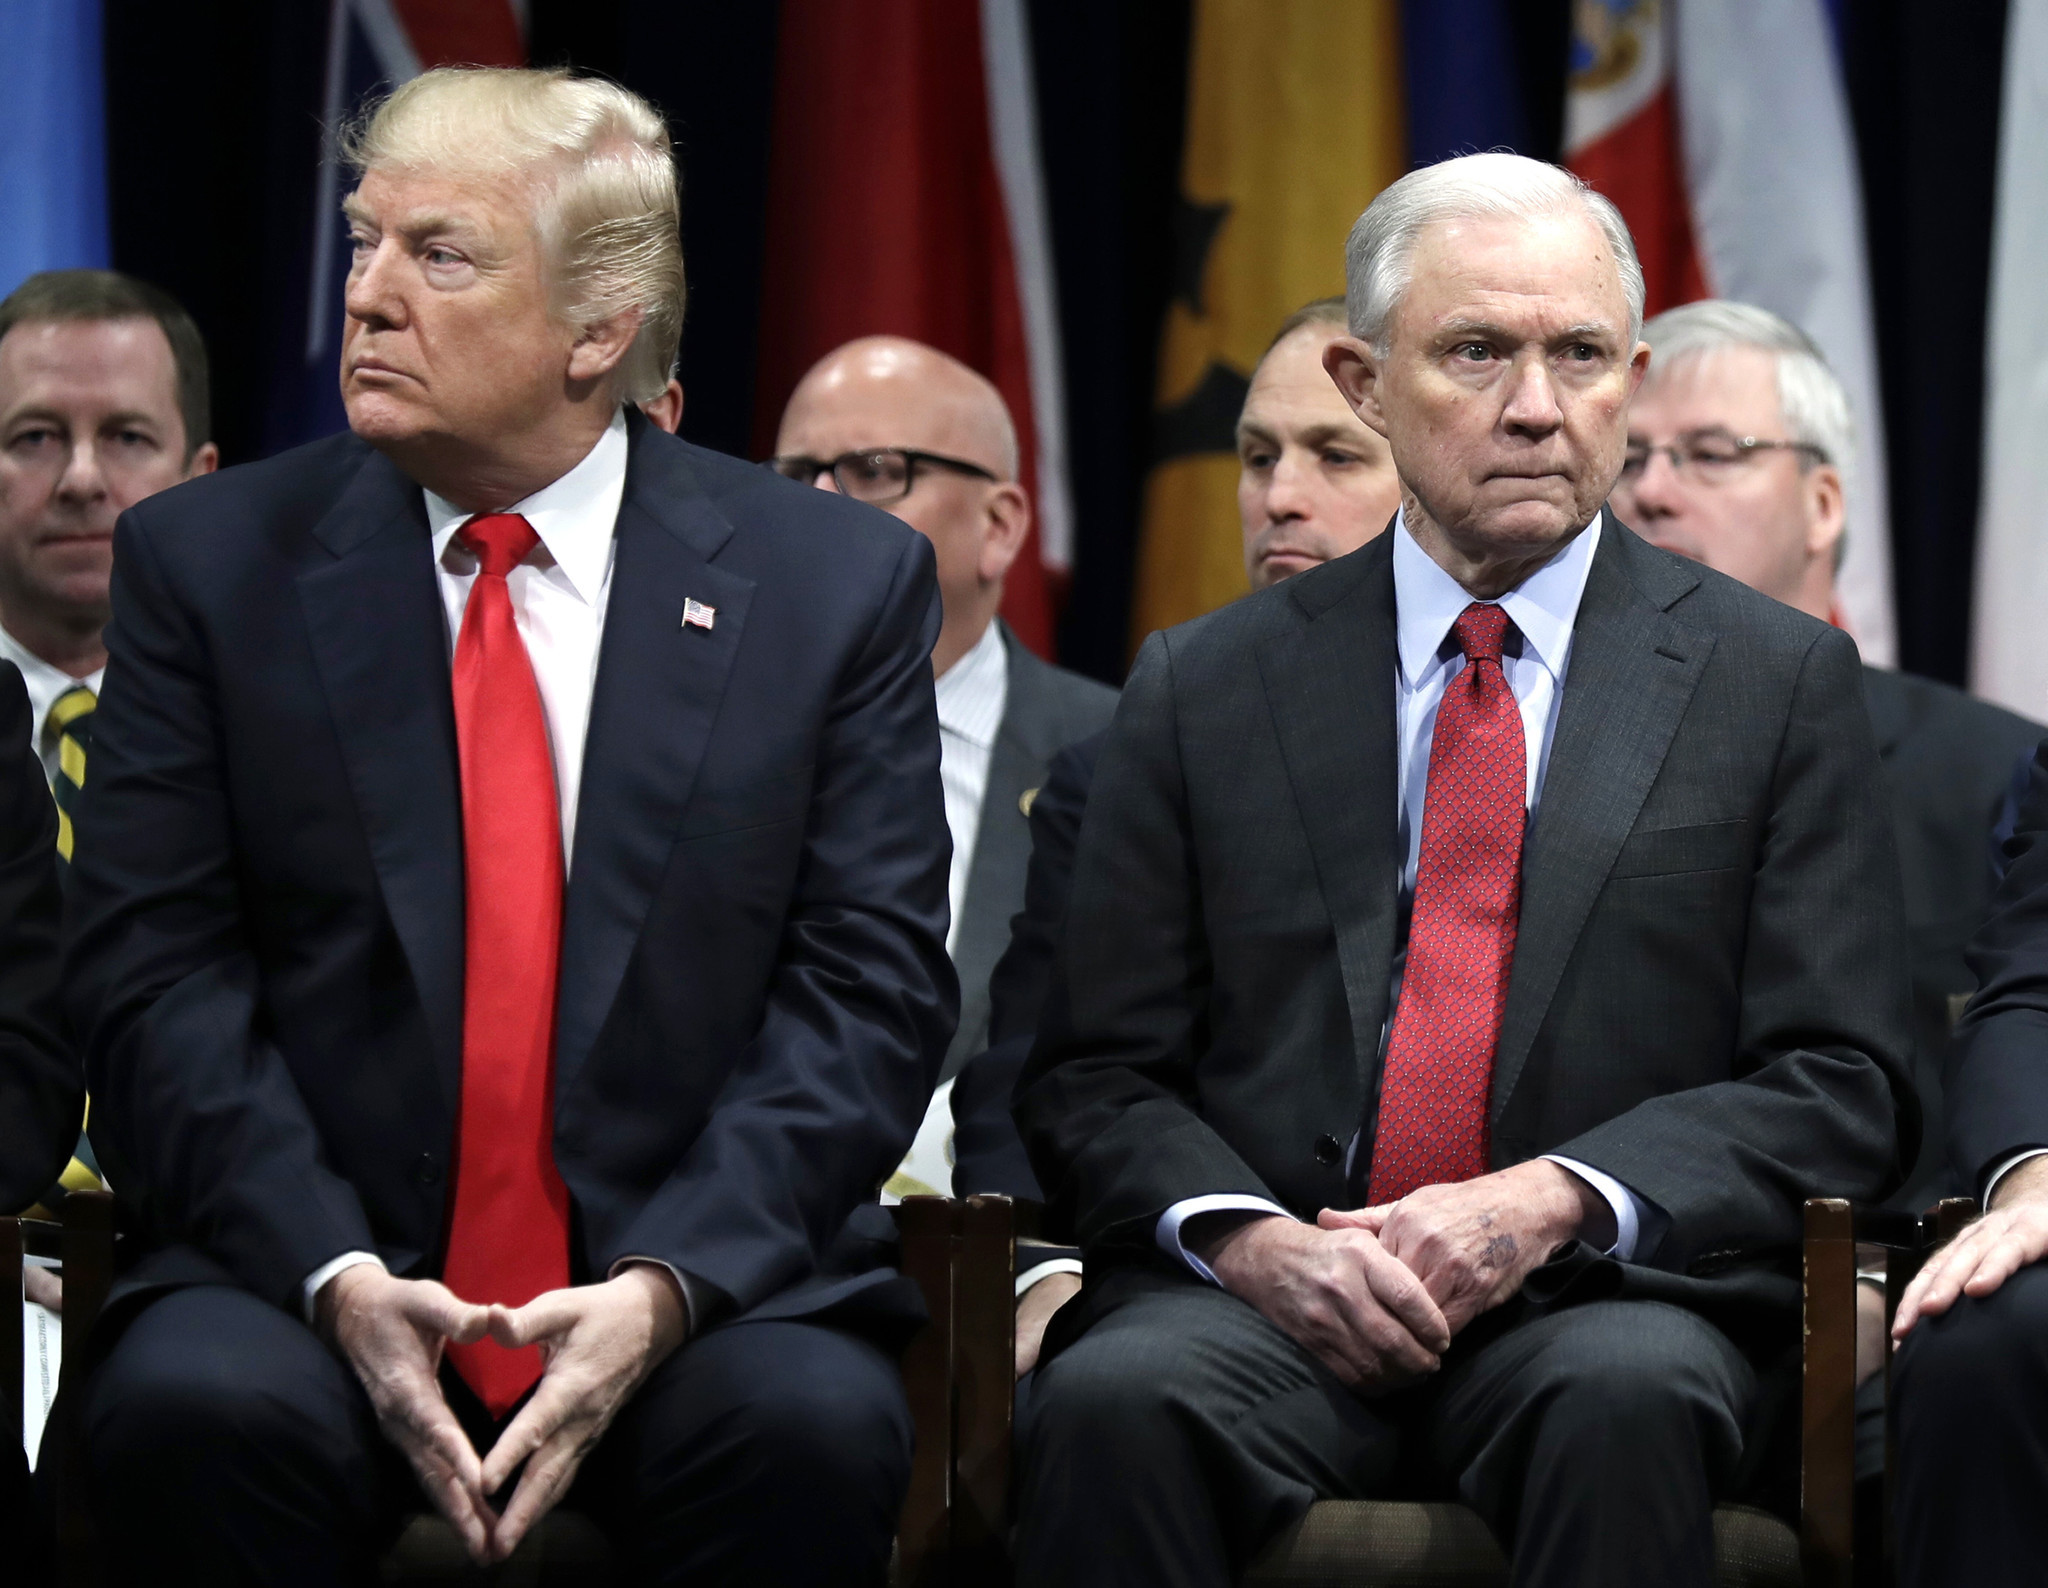 Trump warns 'delusional' Jeff Sessions to stop mentioning him in Alabama Senate campaign